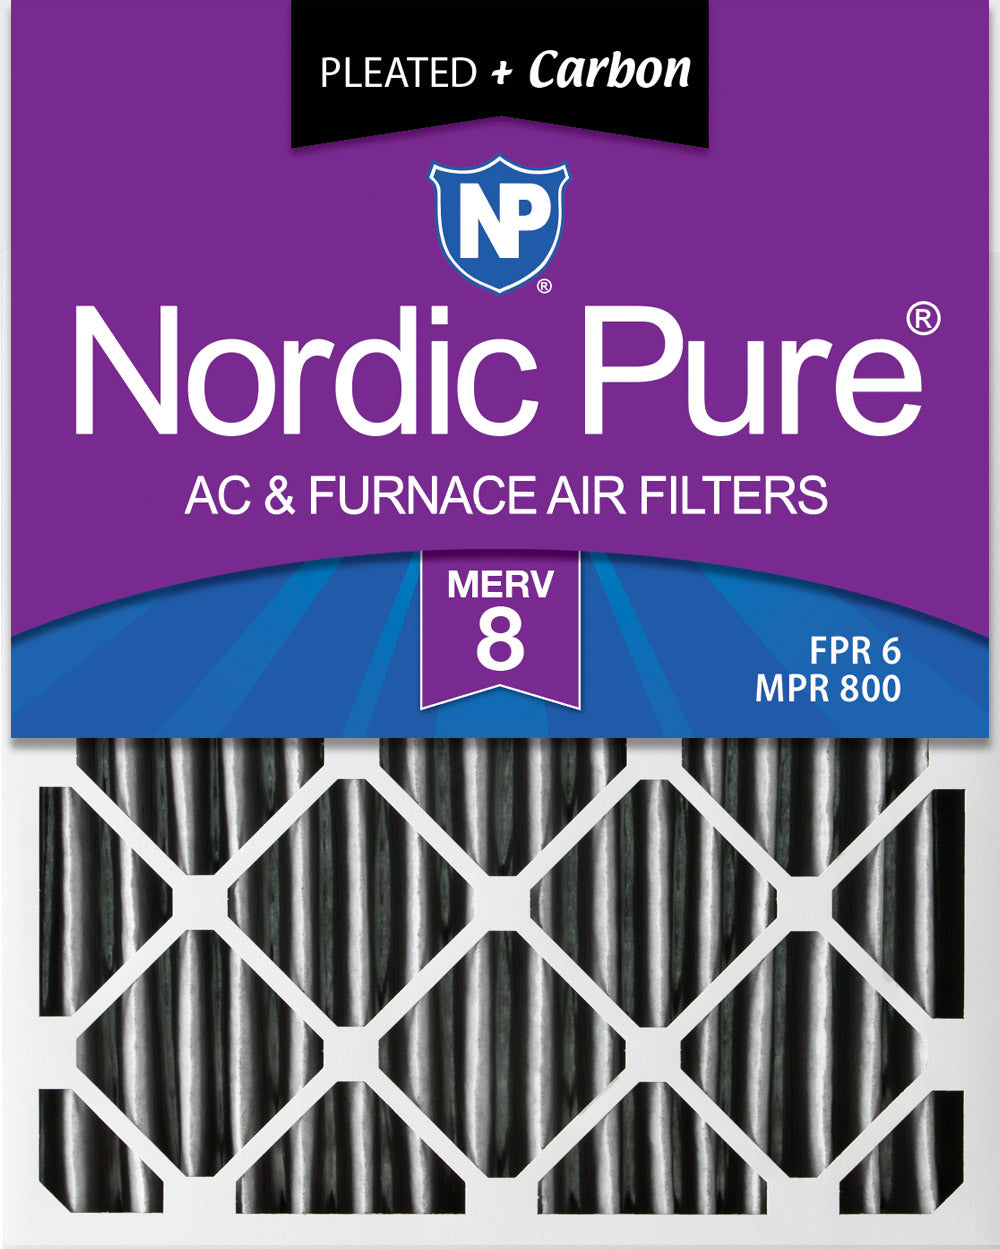 14x20x2 Furnace Air Filters MERV 8 Pleated Plus Carbon 12 Pack